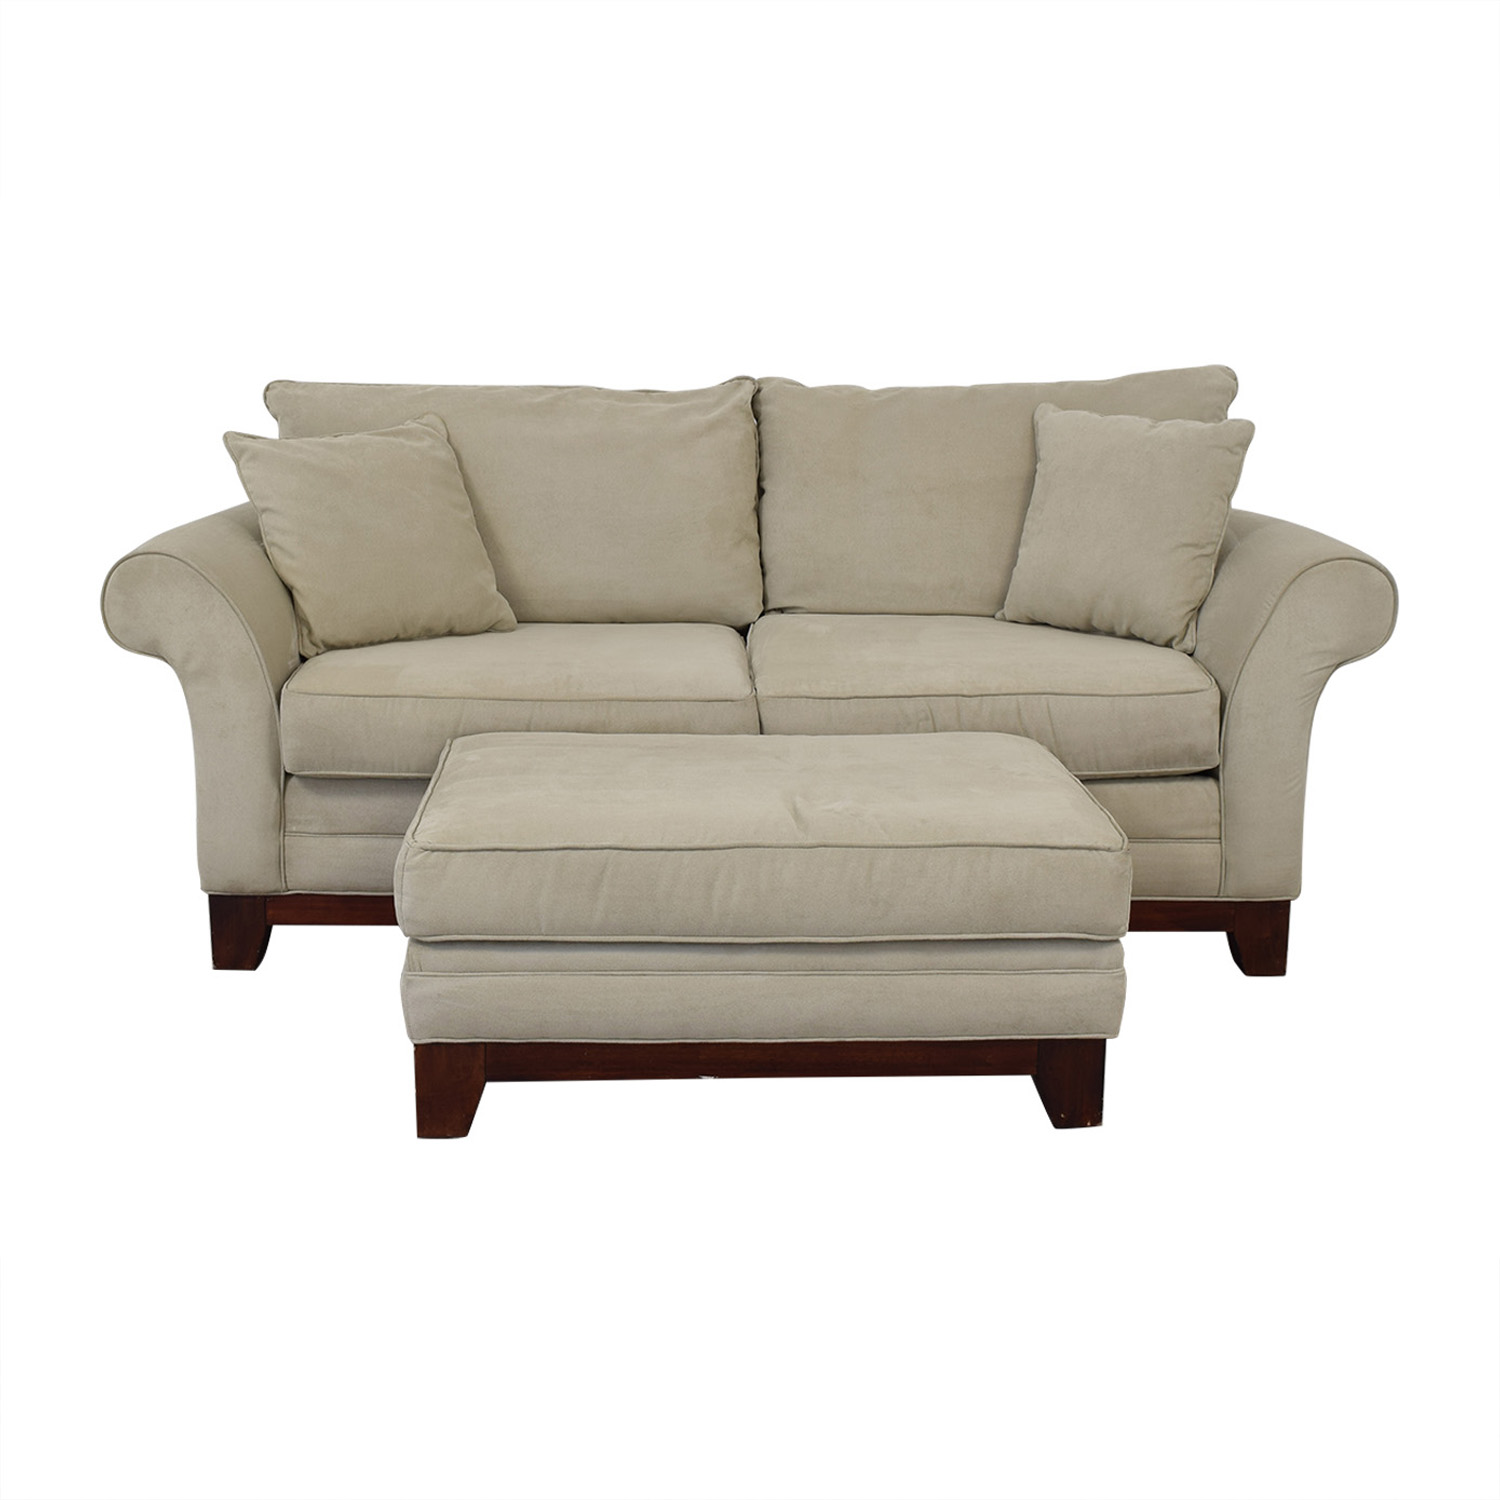 Craftmaster Furniture Craftmaster Furniture Microsuede Couch and Ottoman discount